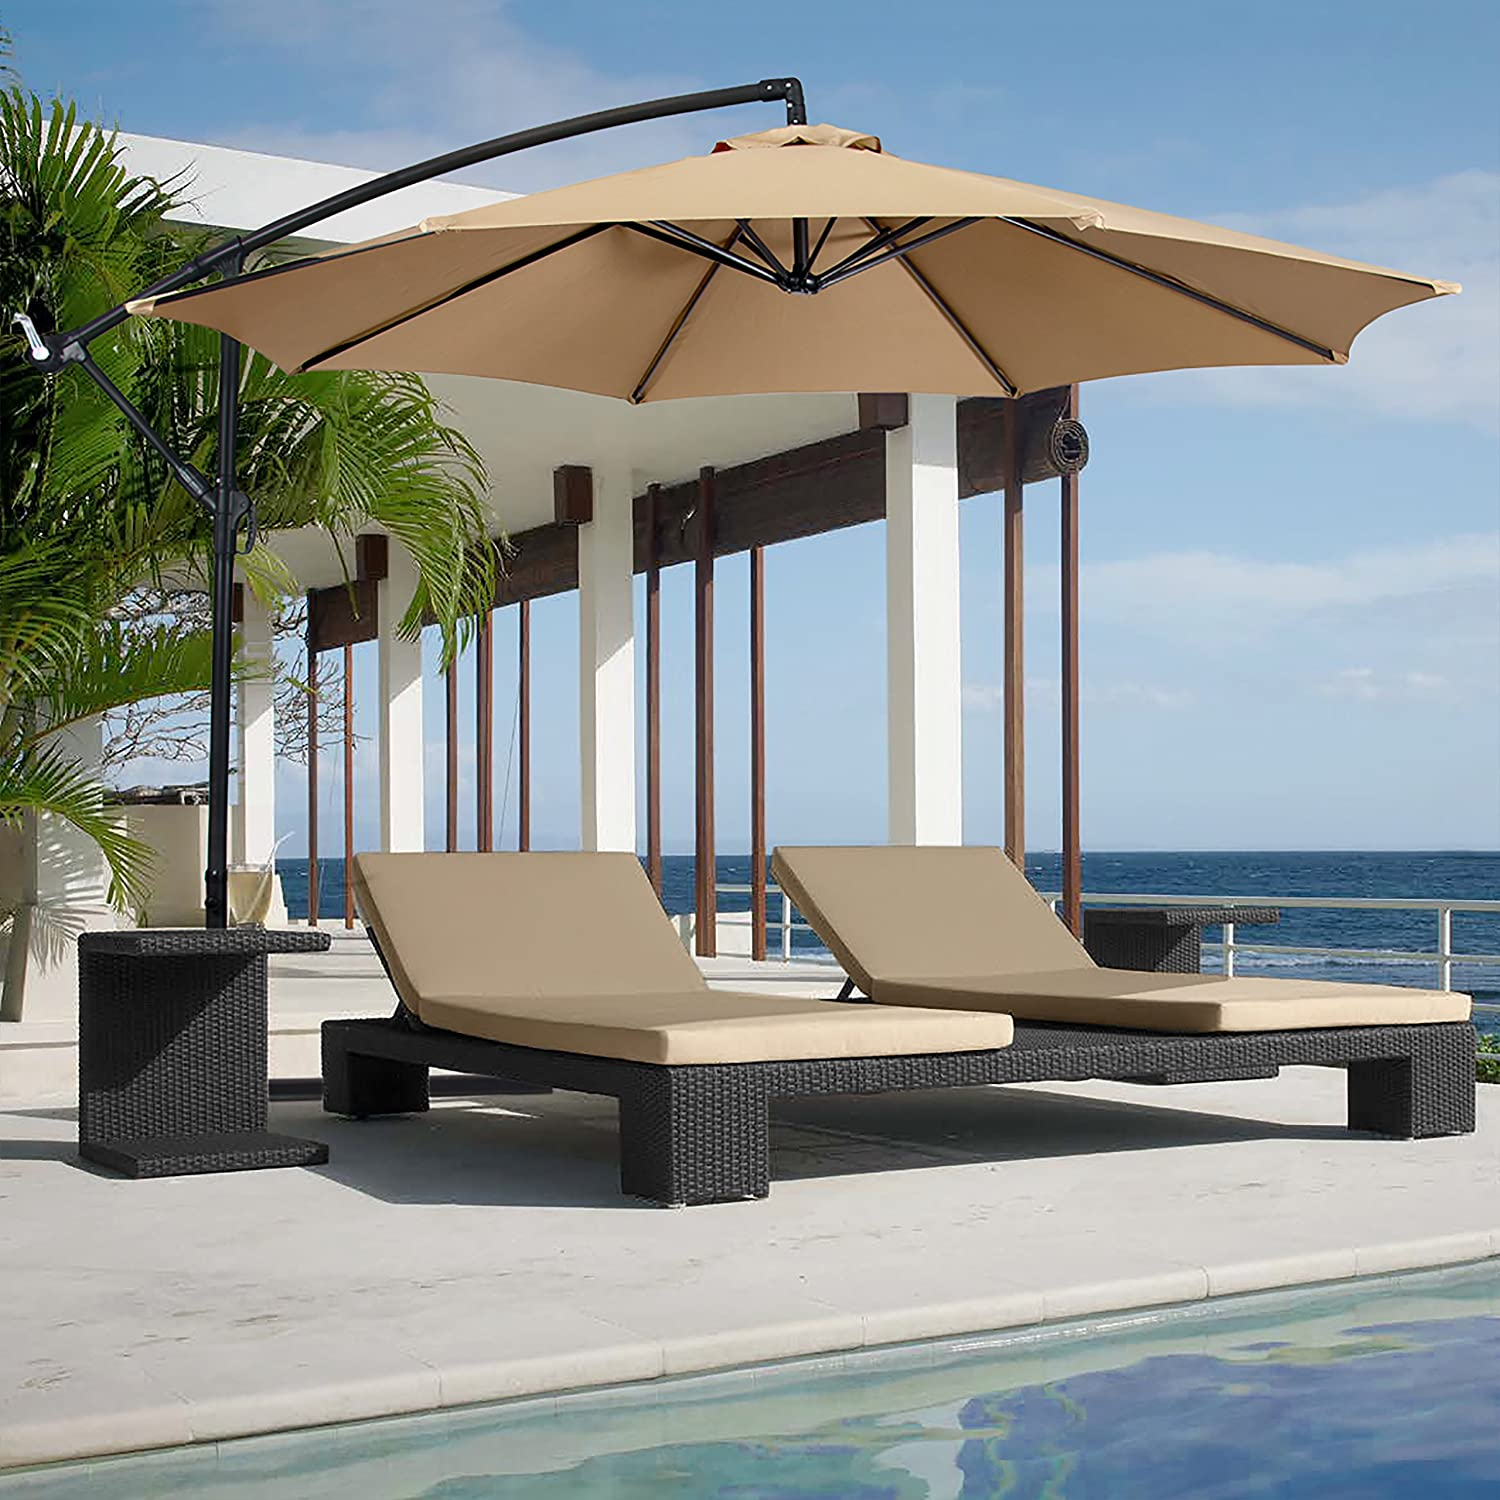 Amazon.com : Best Choice Products Patio Umbrella Offset 10' Hanging Umbrella  Outdoor Market Umbrella Tan New : Patio, Lawn & Garden - Amazon.com : Best Choice Products Patio Umbrella Offset 10